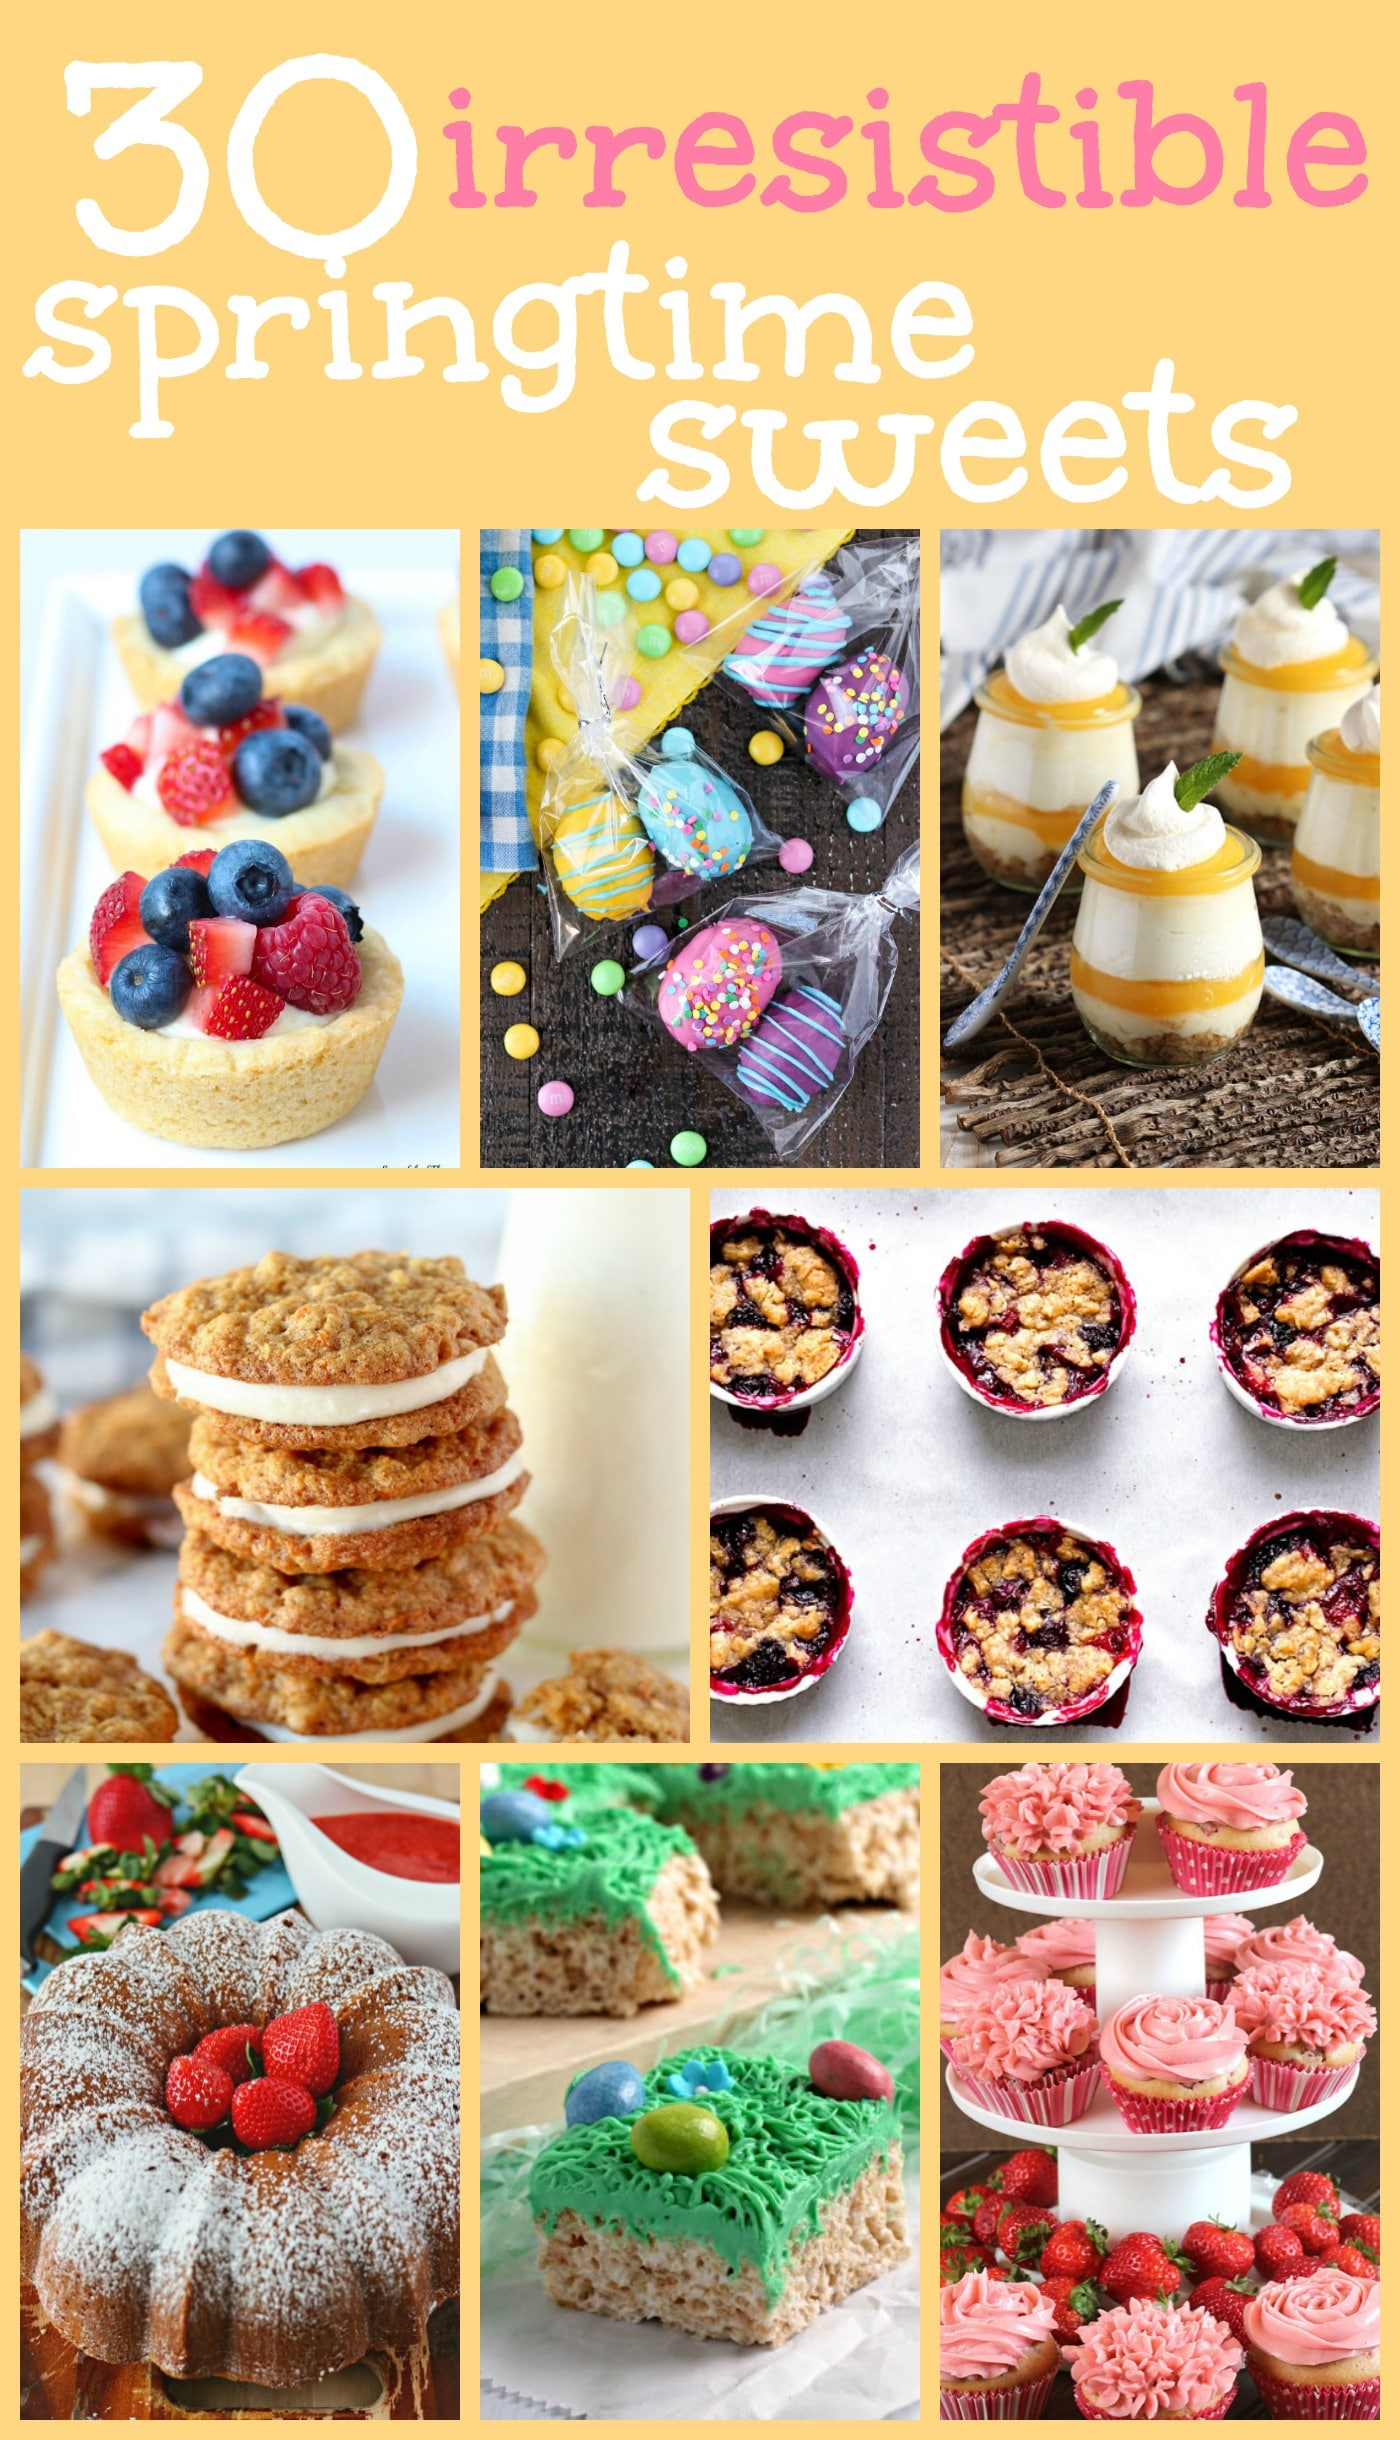 30 Irresistible Springtime Sweets photo collage